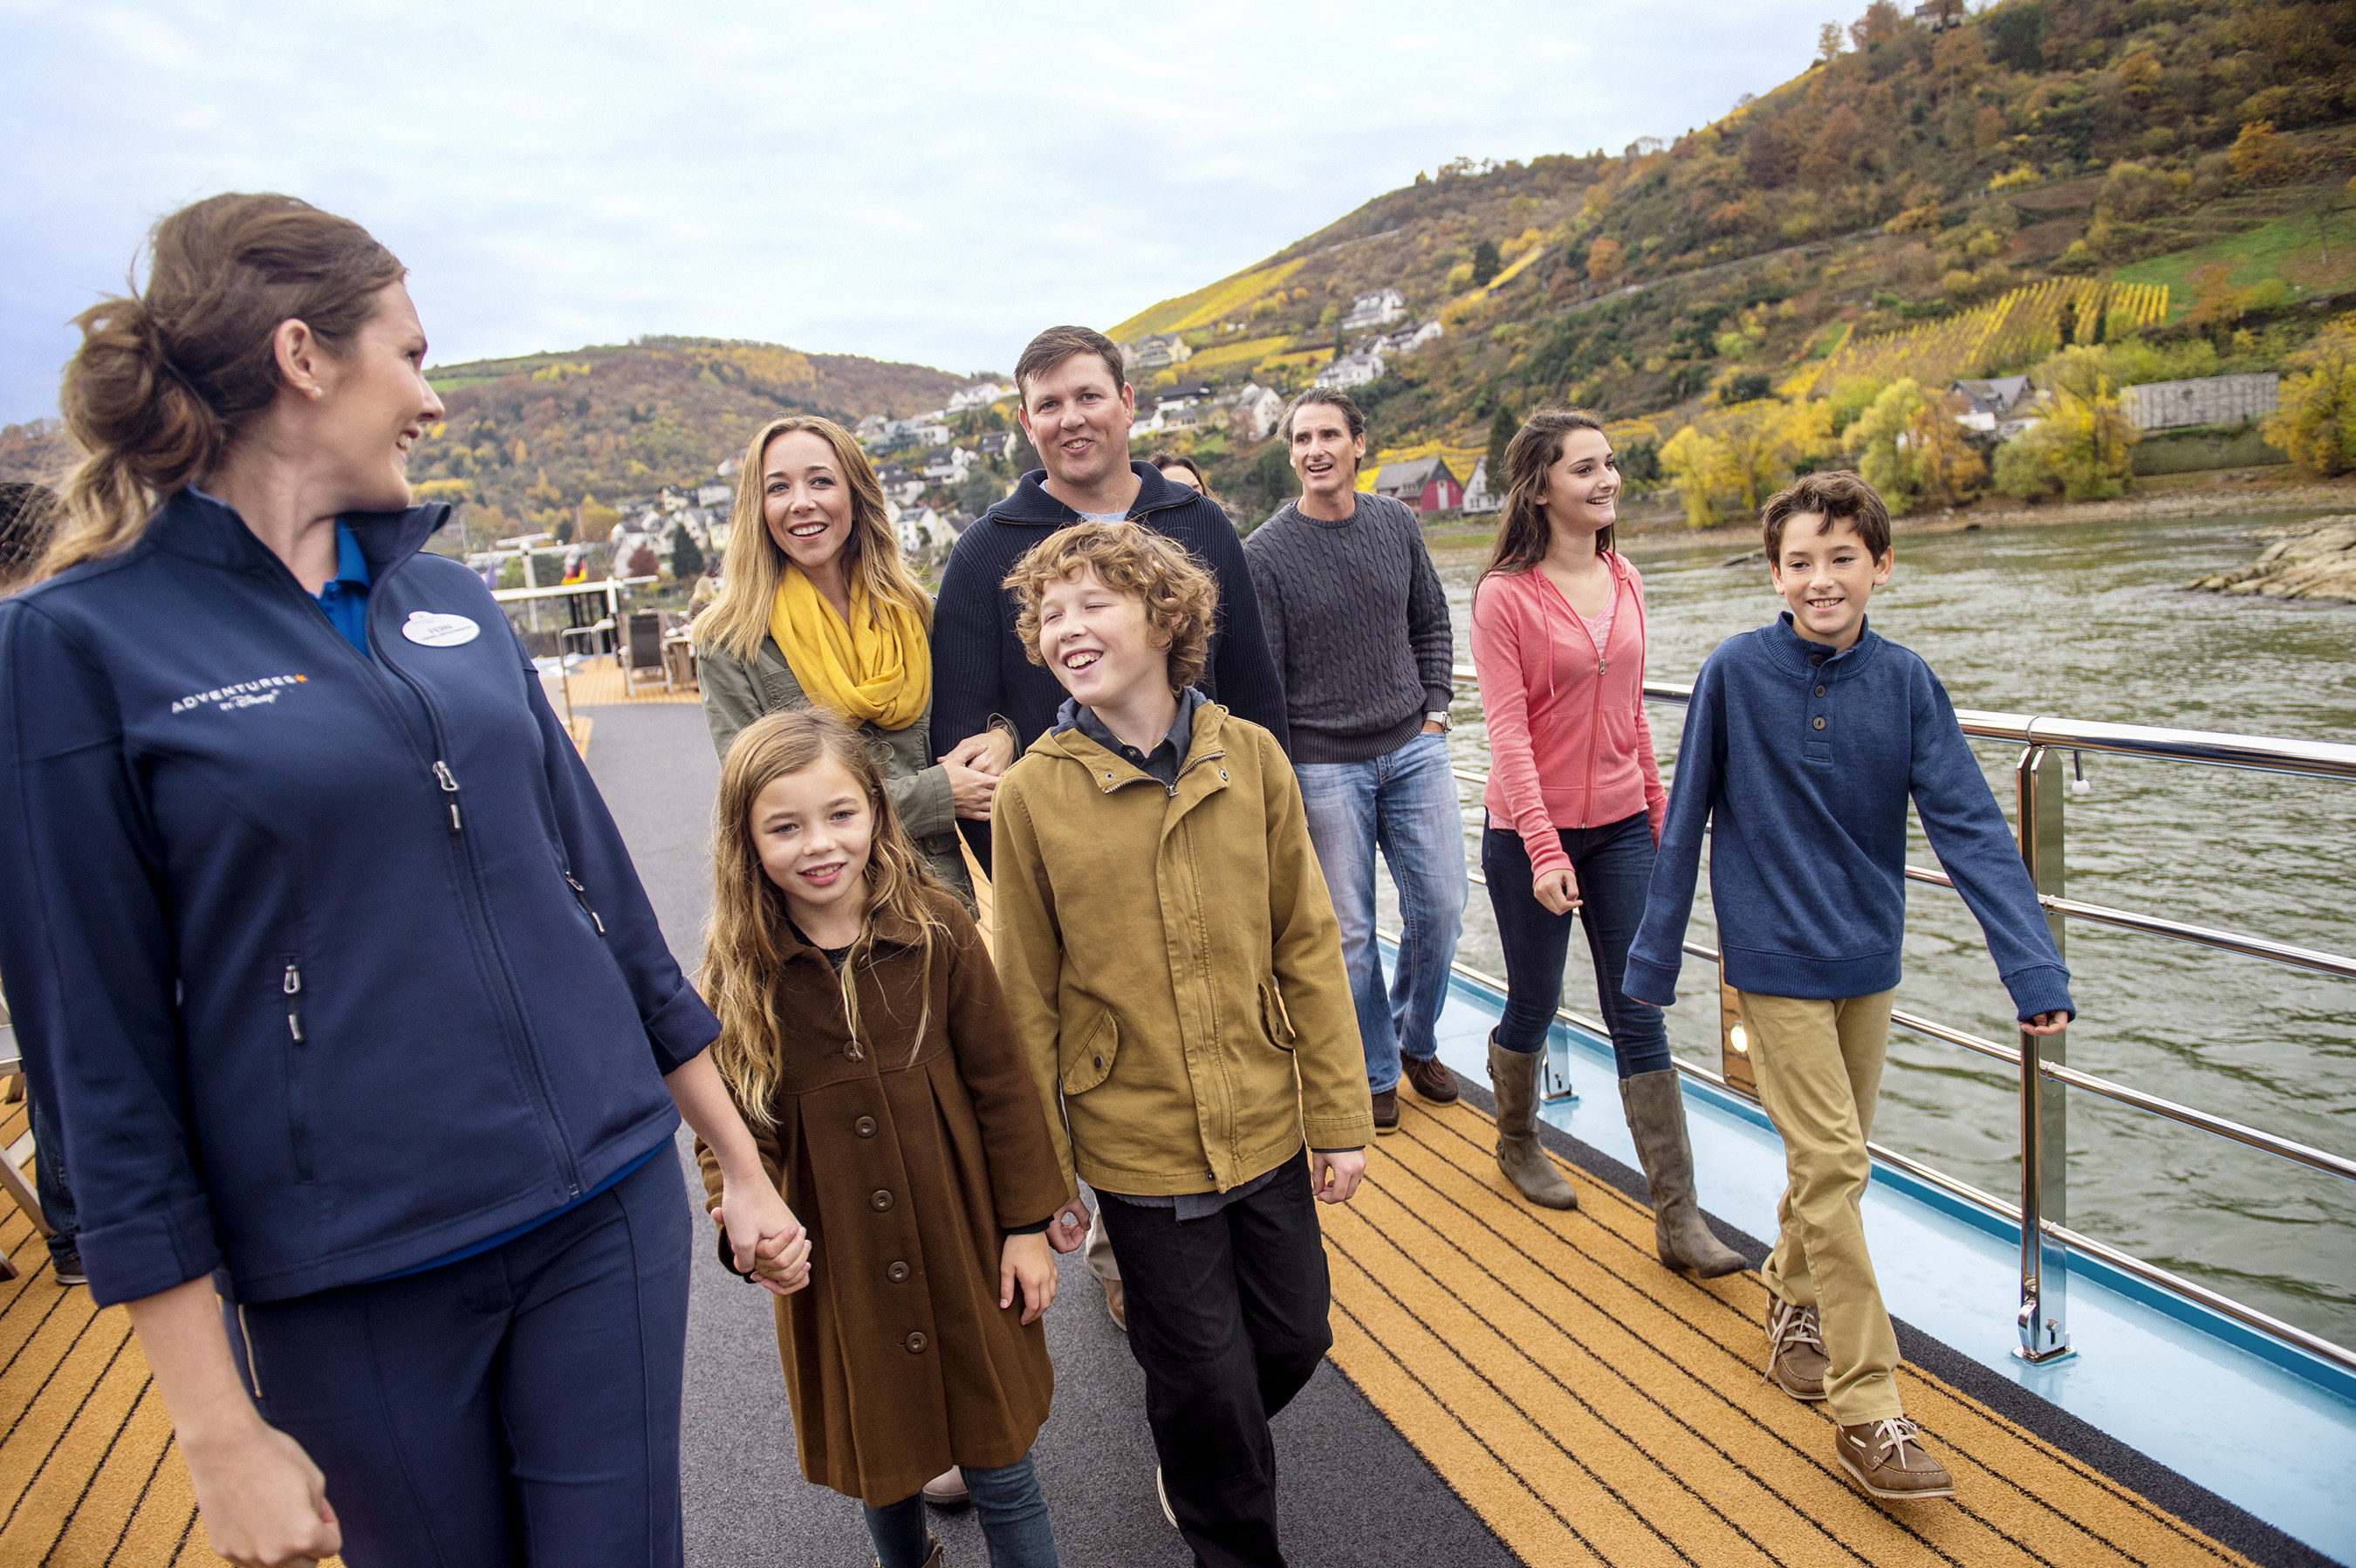 New 2017 Adventures by Disney Itineraries--New Rhine River Vacation